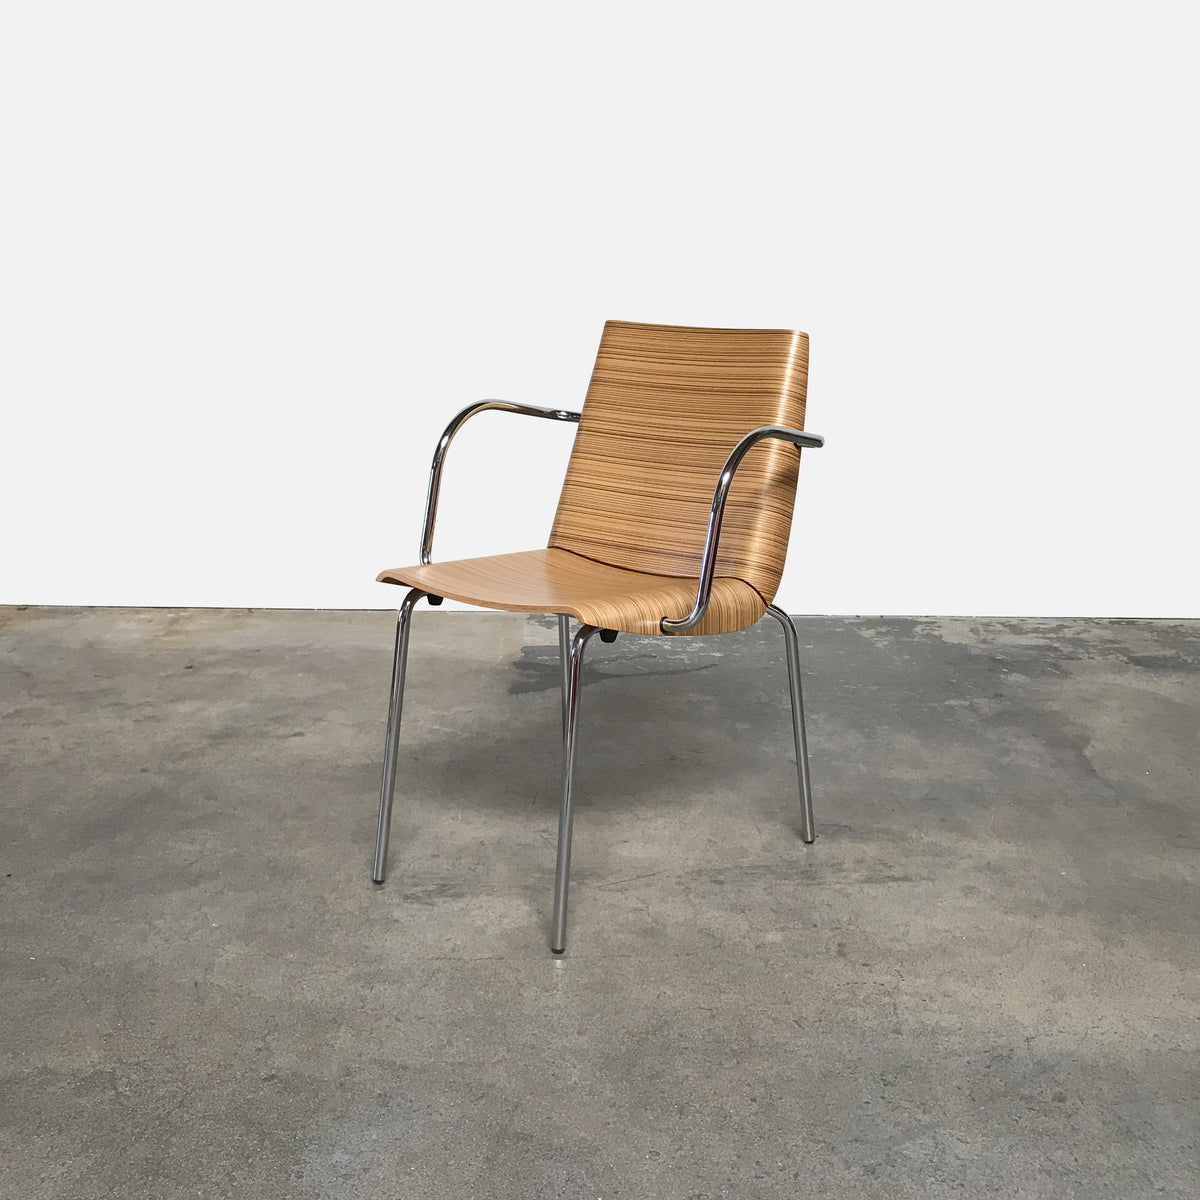 Plank Millefoglie Chair & Armchair by Biagio Cisotti